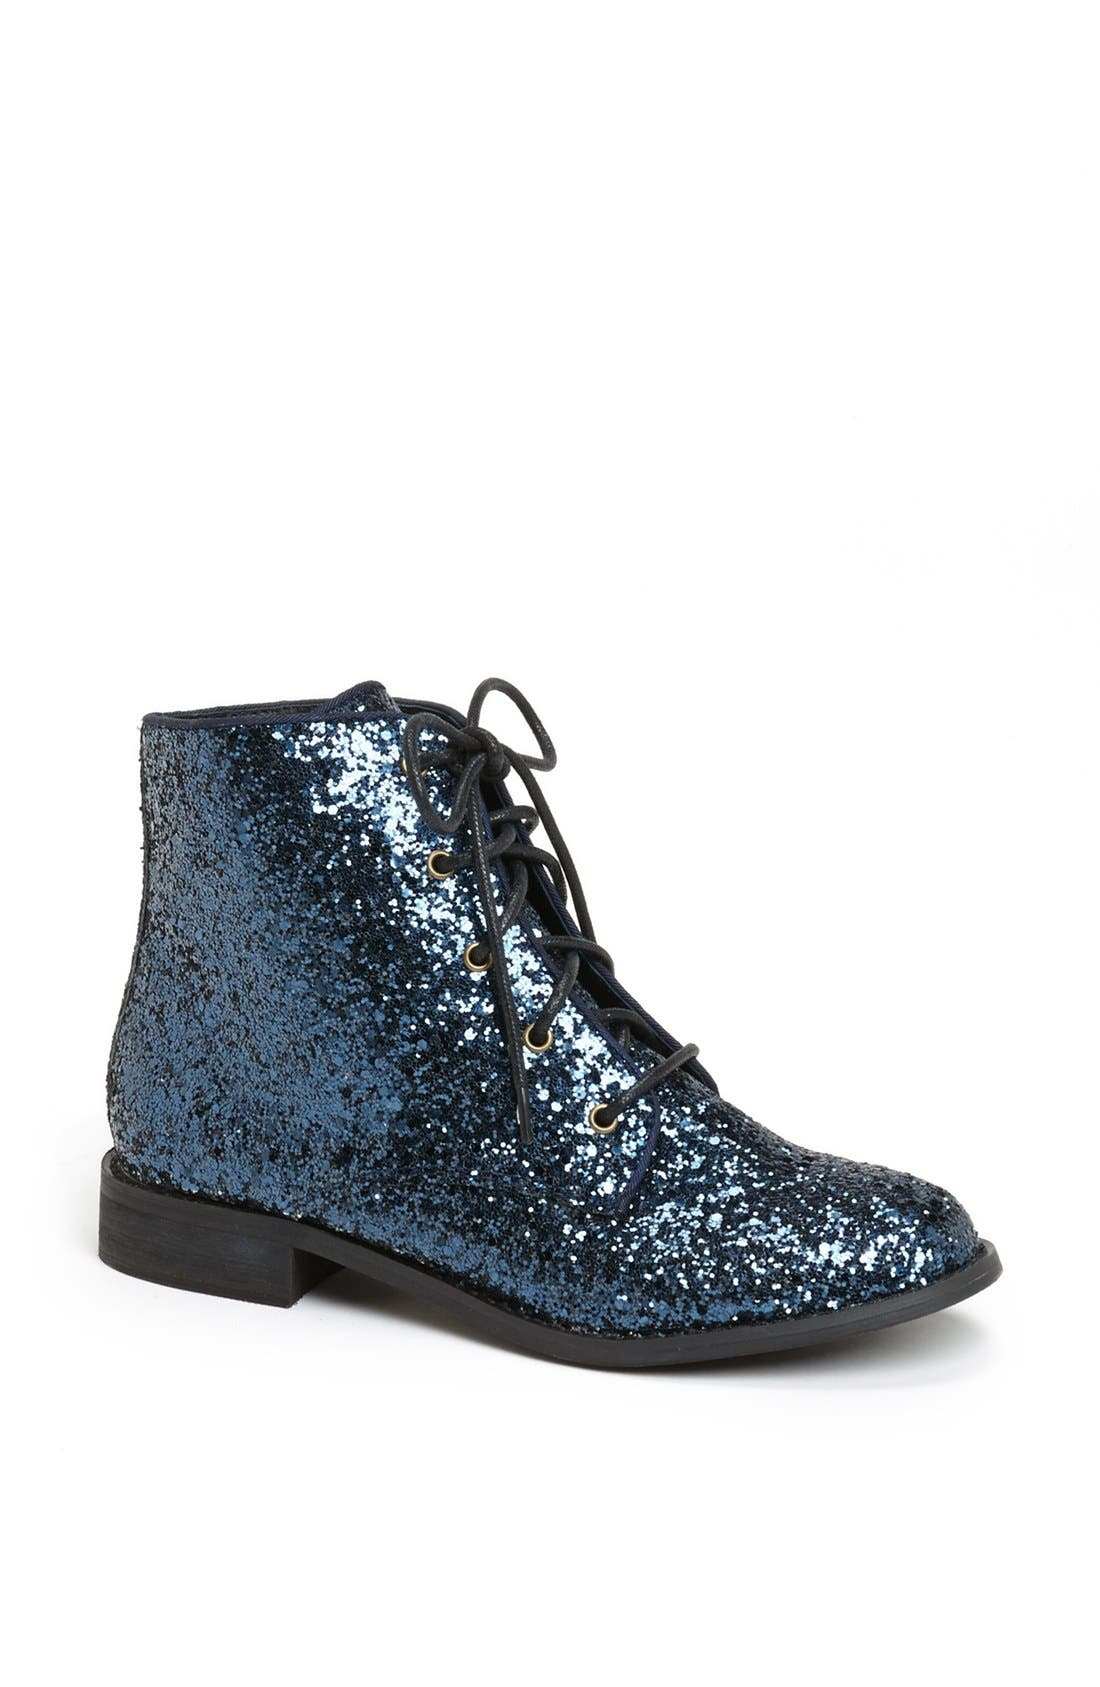 Alternate Image 1 Selected - Shellys London 'Kmenta' Glitter Boot